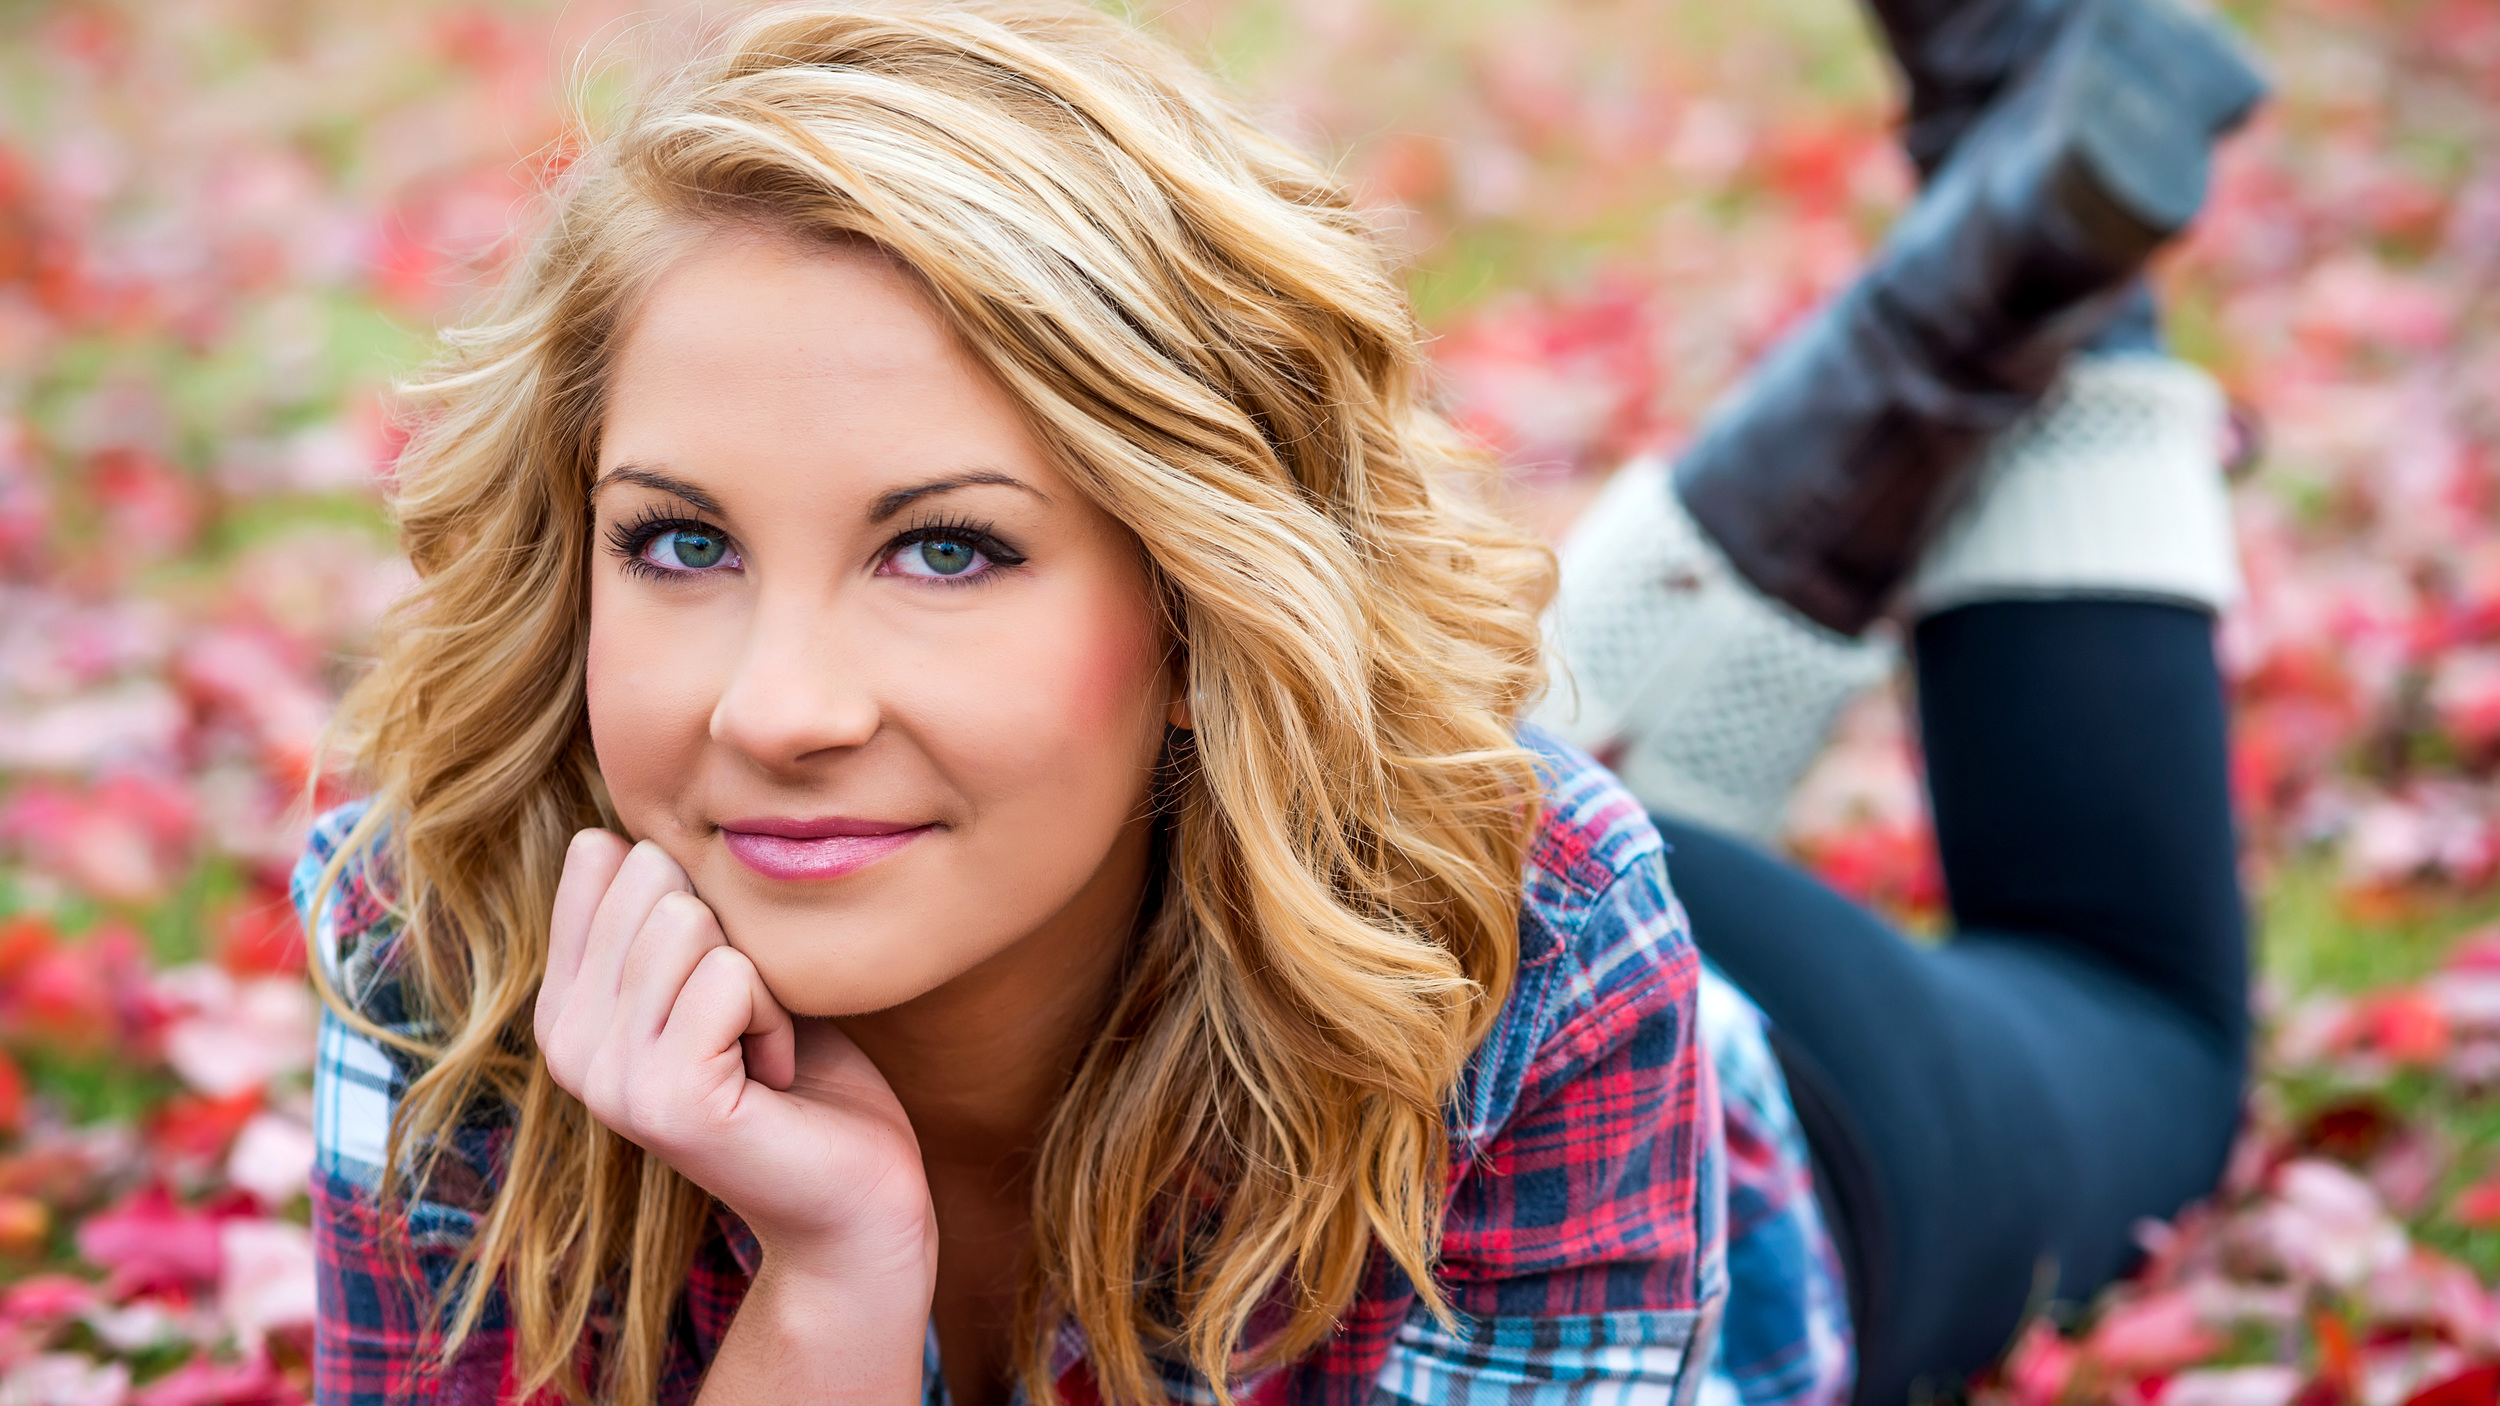 Conemaugh Township Senior Pictures by Tony Urban Photography Somerset PA